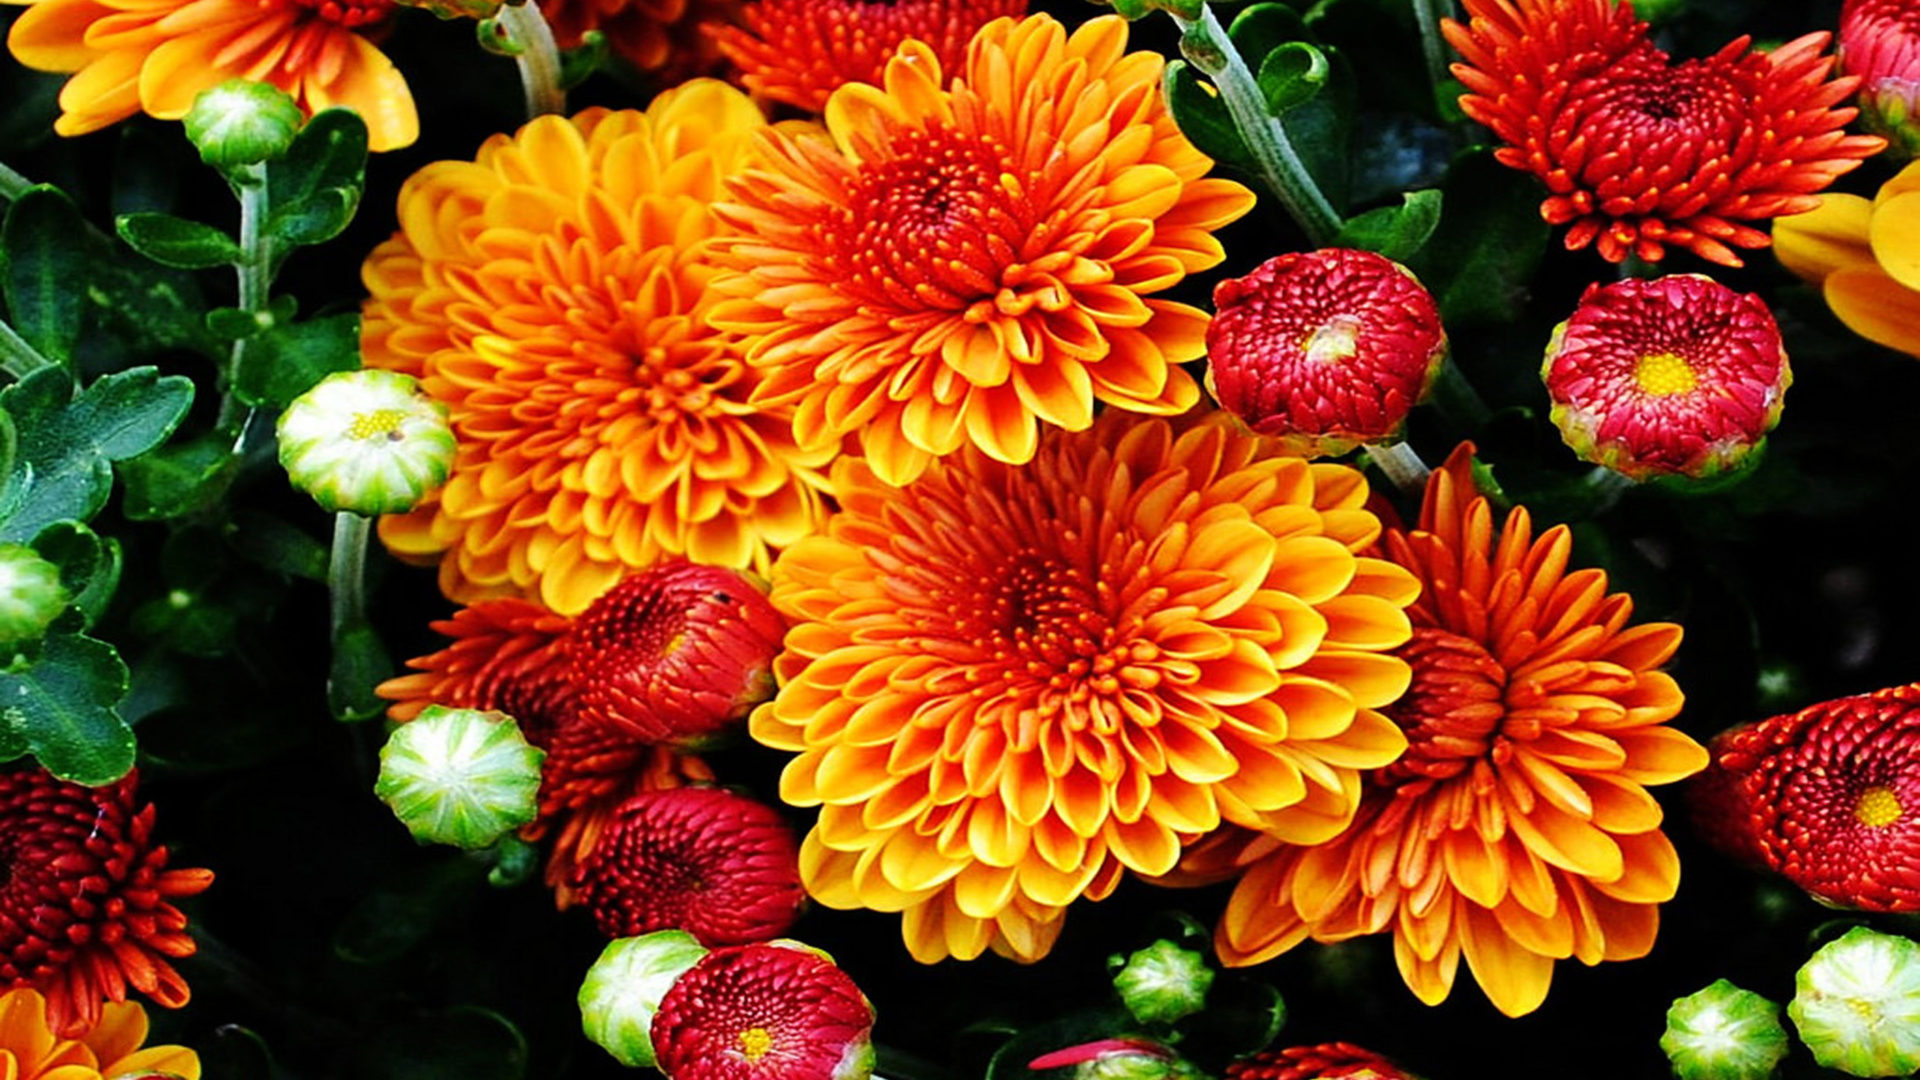 Fall Daisy Wallpaper Fall Mums Colored Flowers From The Garden With A Beautiful